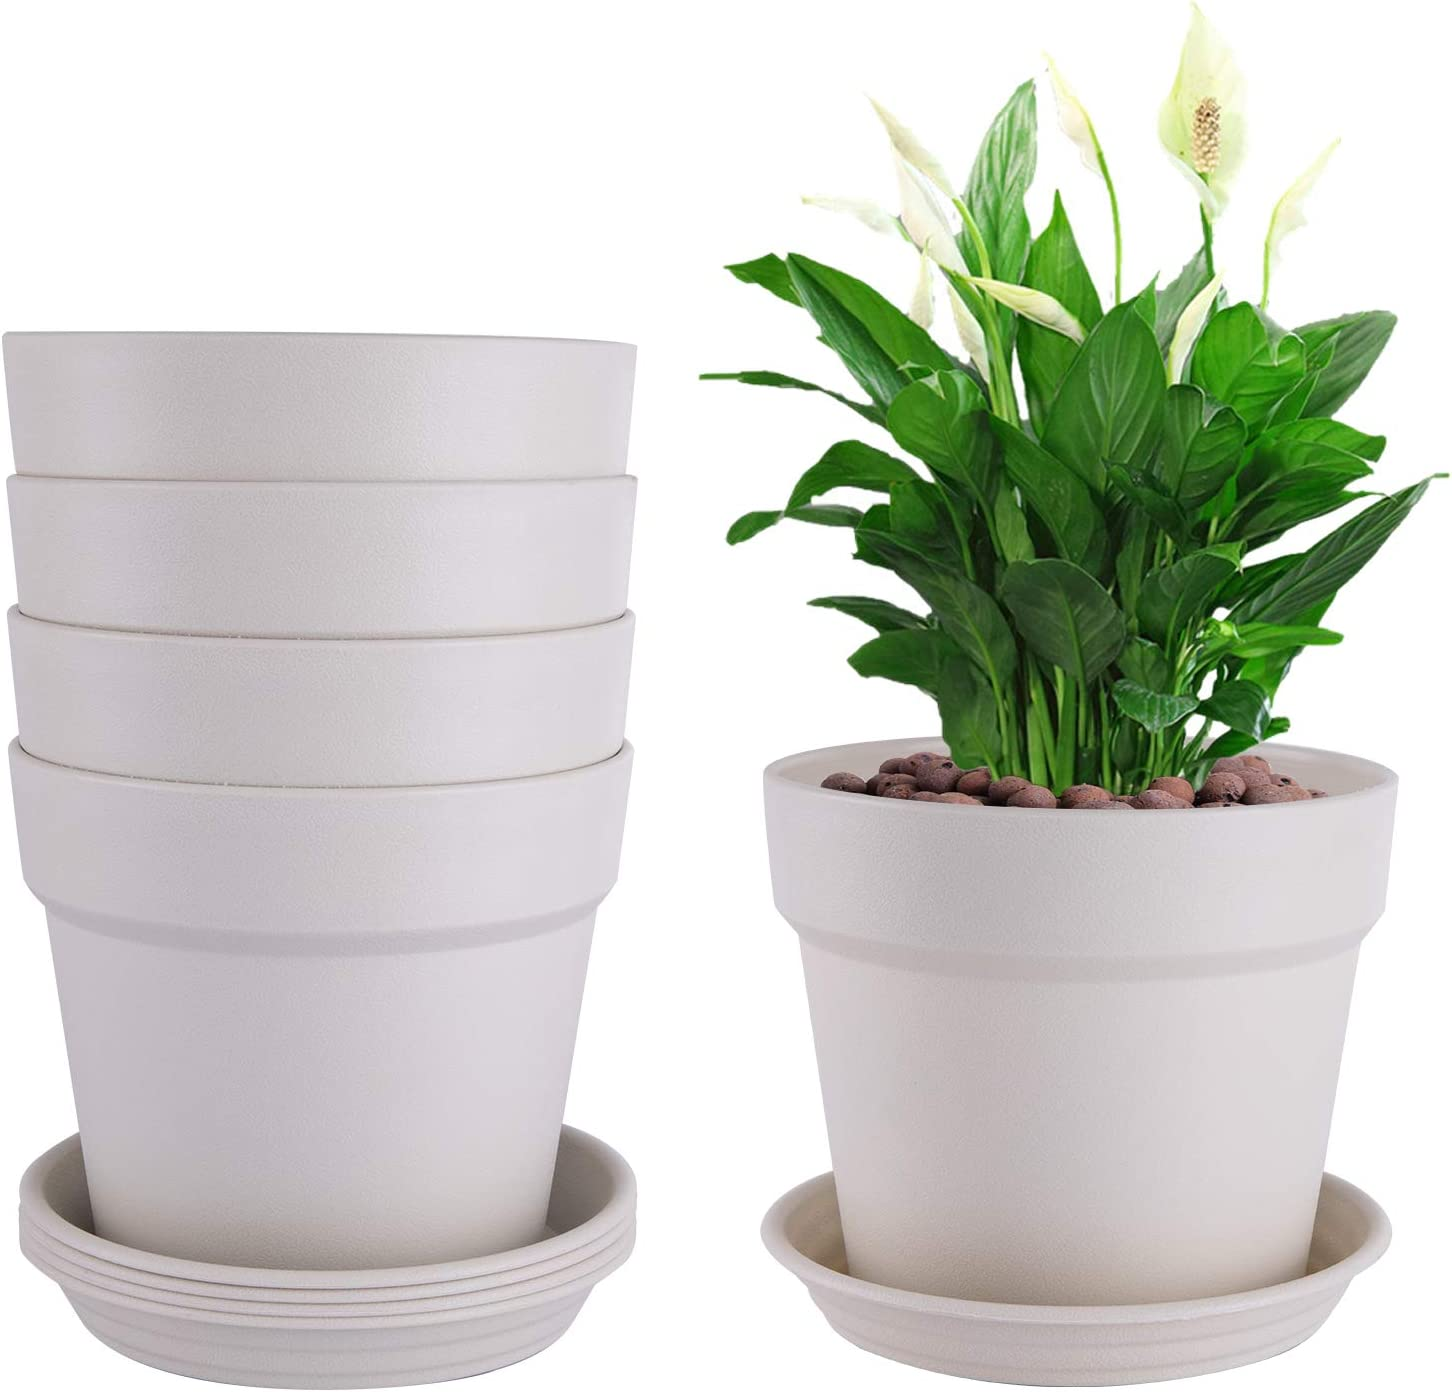 EPFamily Set of 5 Plant Pots for Indoor and Outdoor Planters, 6 Inch Plastic Planters with Drainage Hole and Tray in White